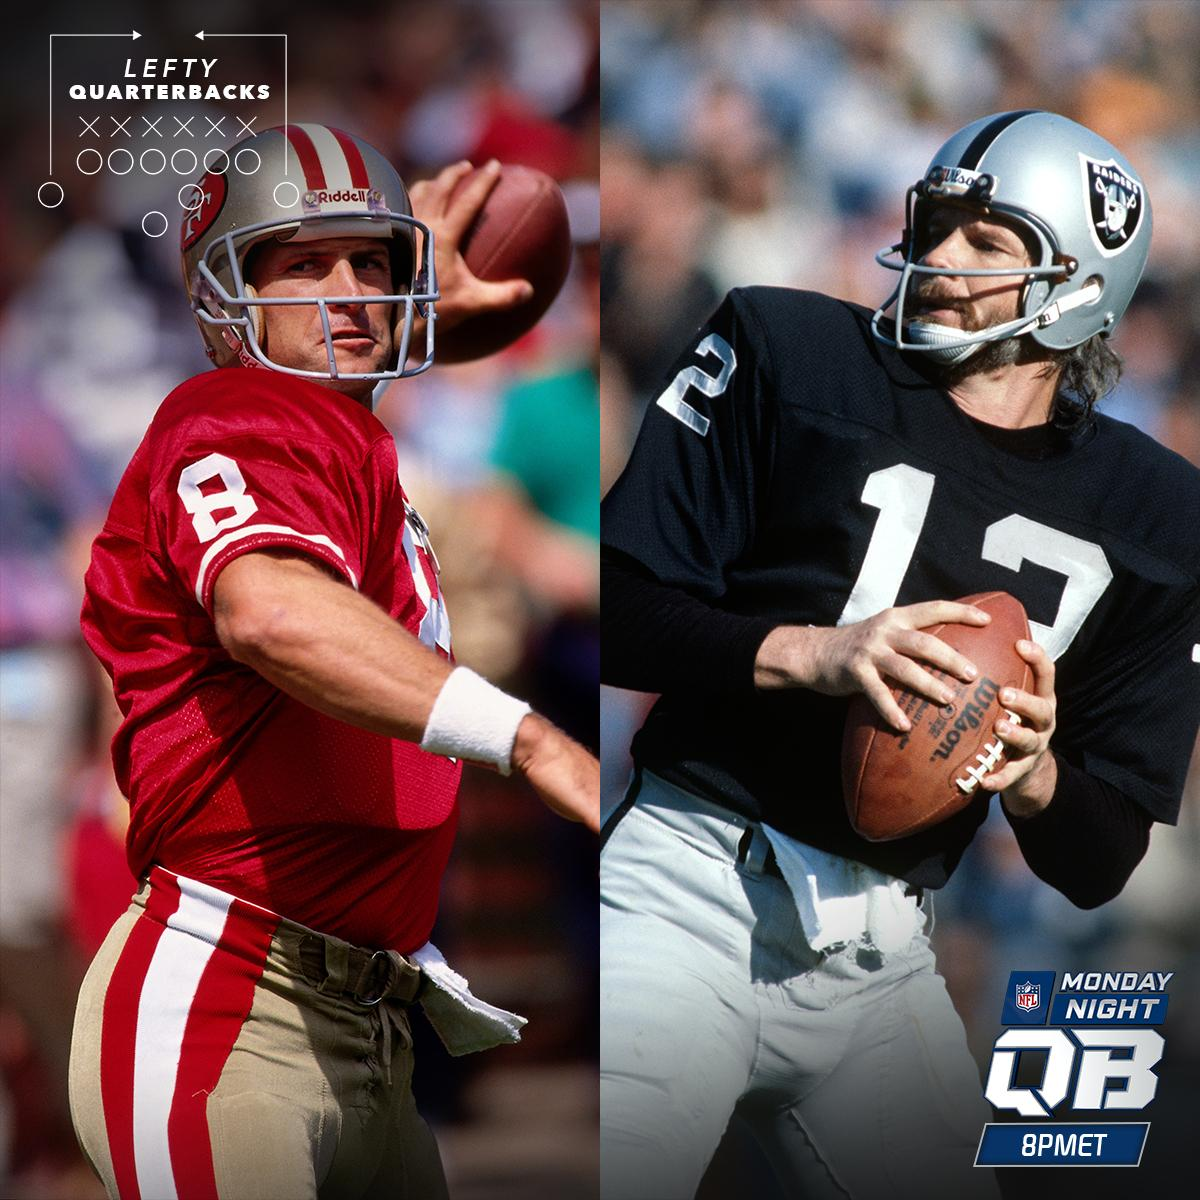 a986b374d83 in august ken stabler will be only the 2nd lefty qb to join the hof the